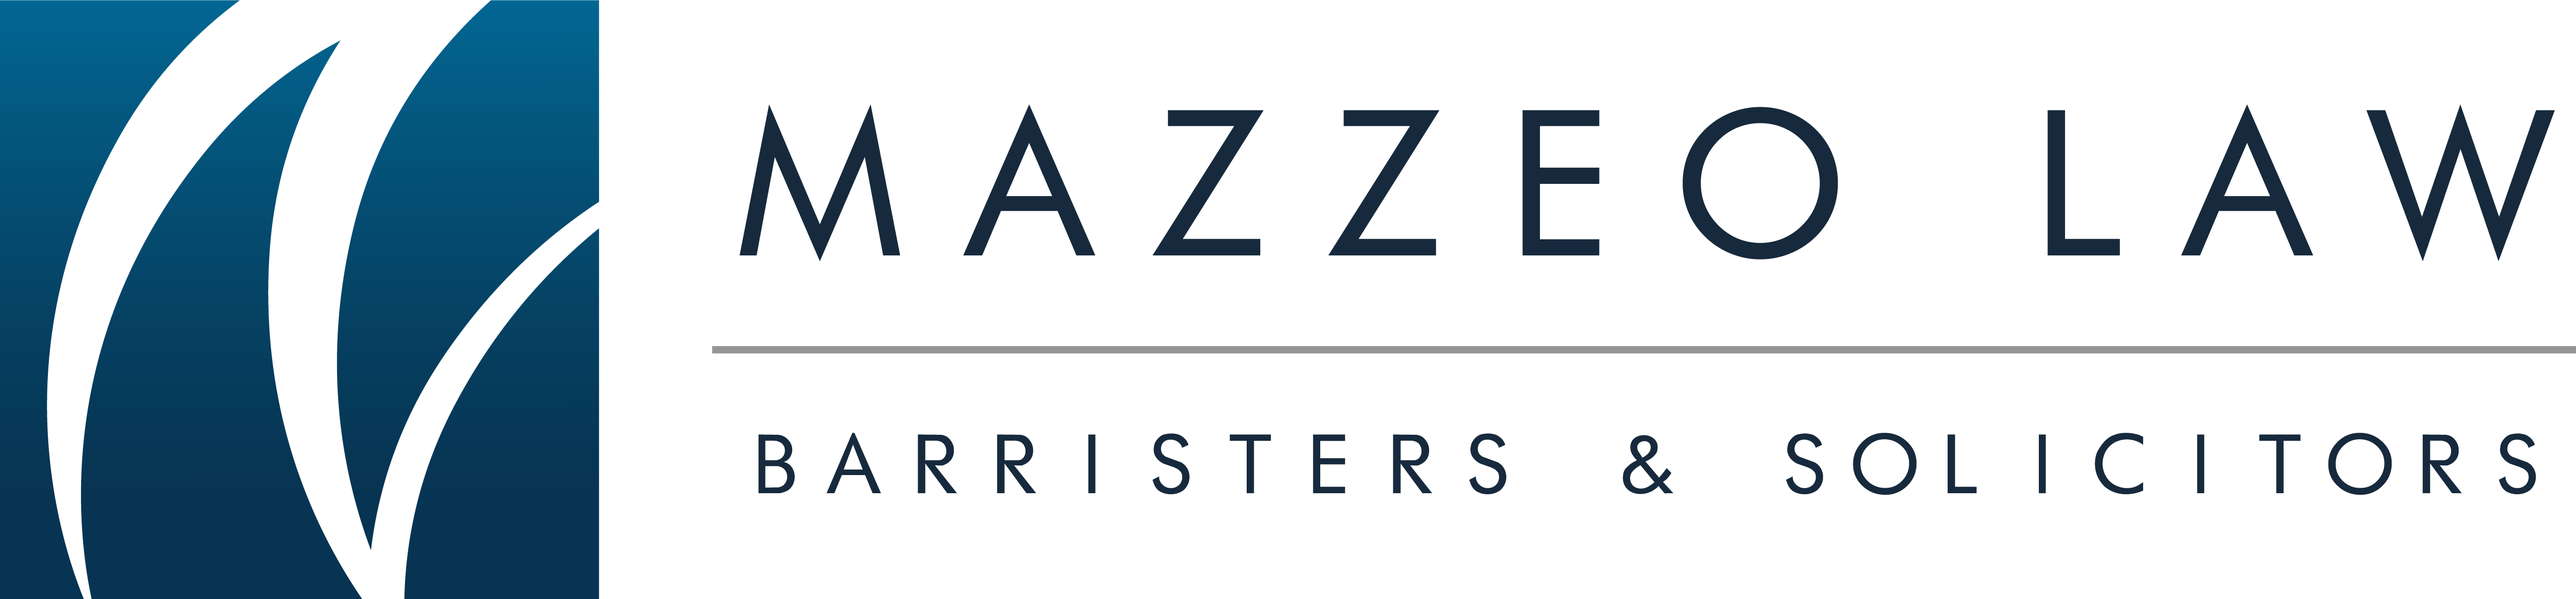 Mazzeo Law Barristers & Solicitors Has New Vaughan Family Lawyer Available